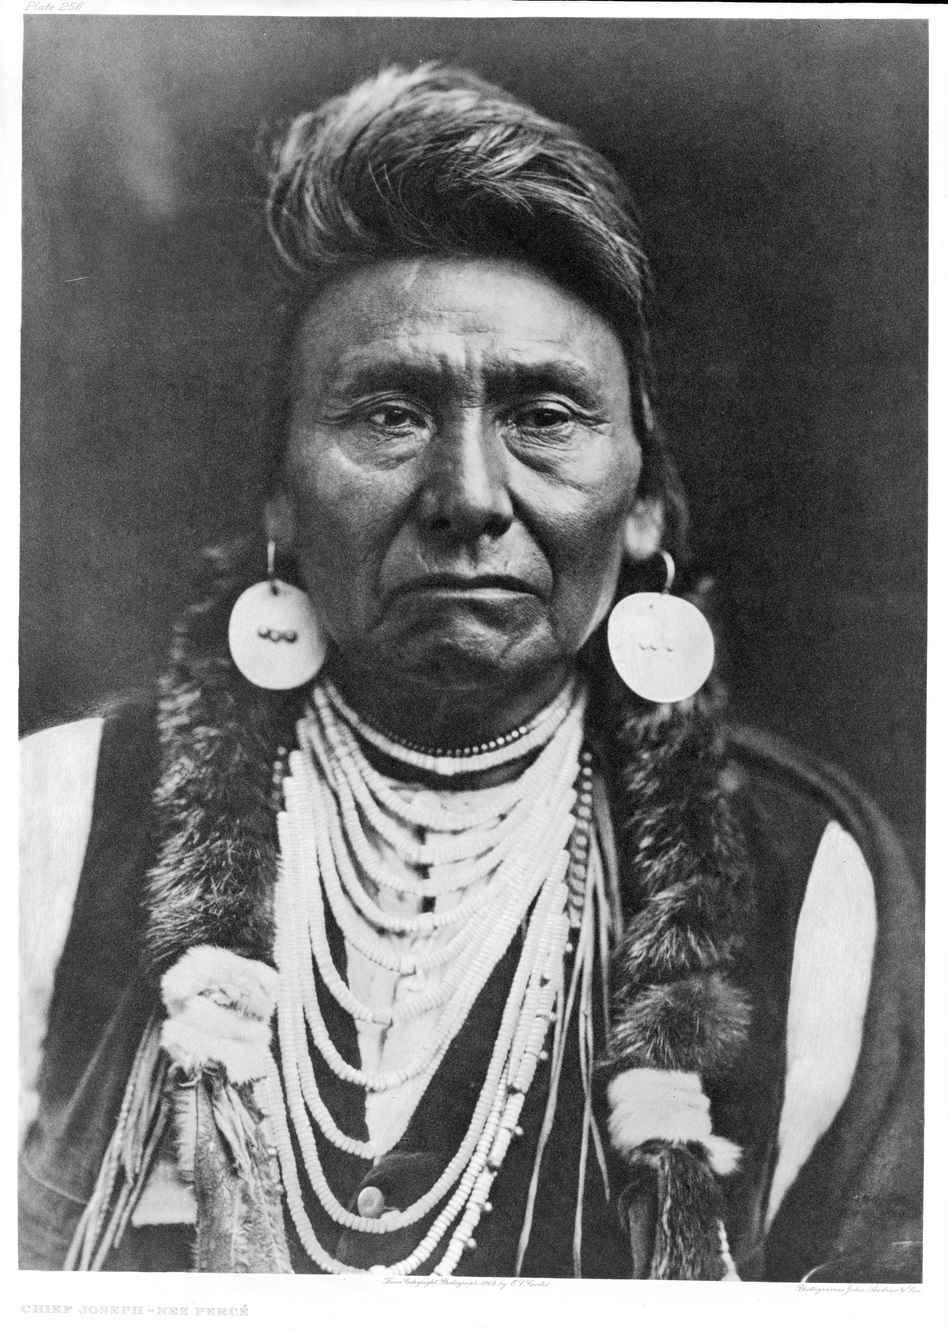 Chief Joseph of the Nez Perce, 1903. Curtis took this picture in his Seattle studio in the last year of Joseph's life. Joseph died, his doctor said, of a broken heart. (Charles Deering McCormick Library of Special Collections, Northwestern University)